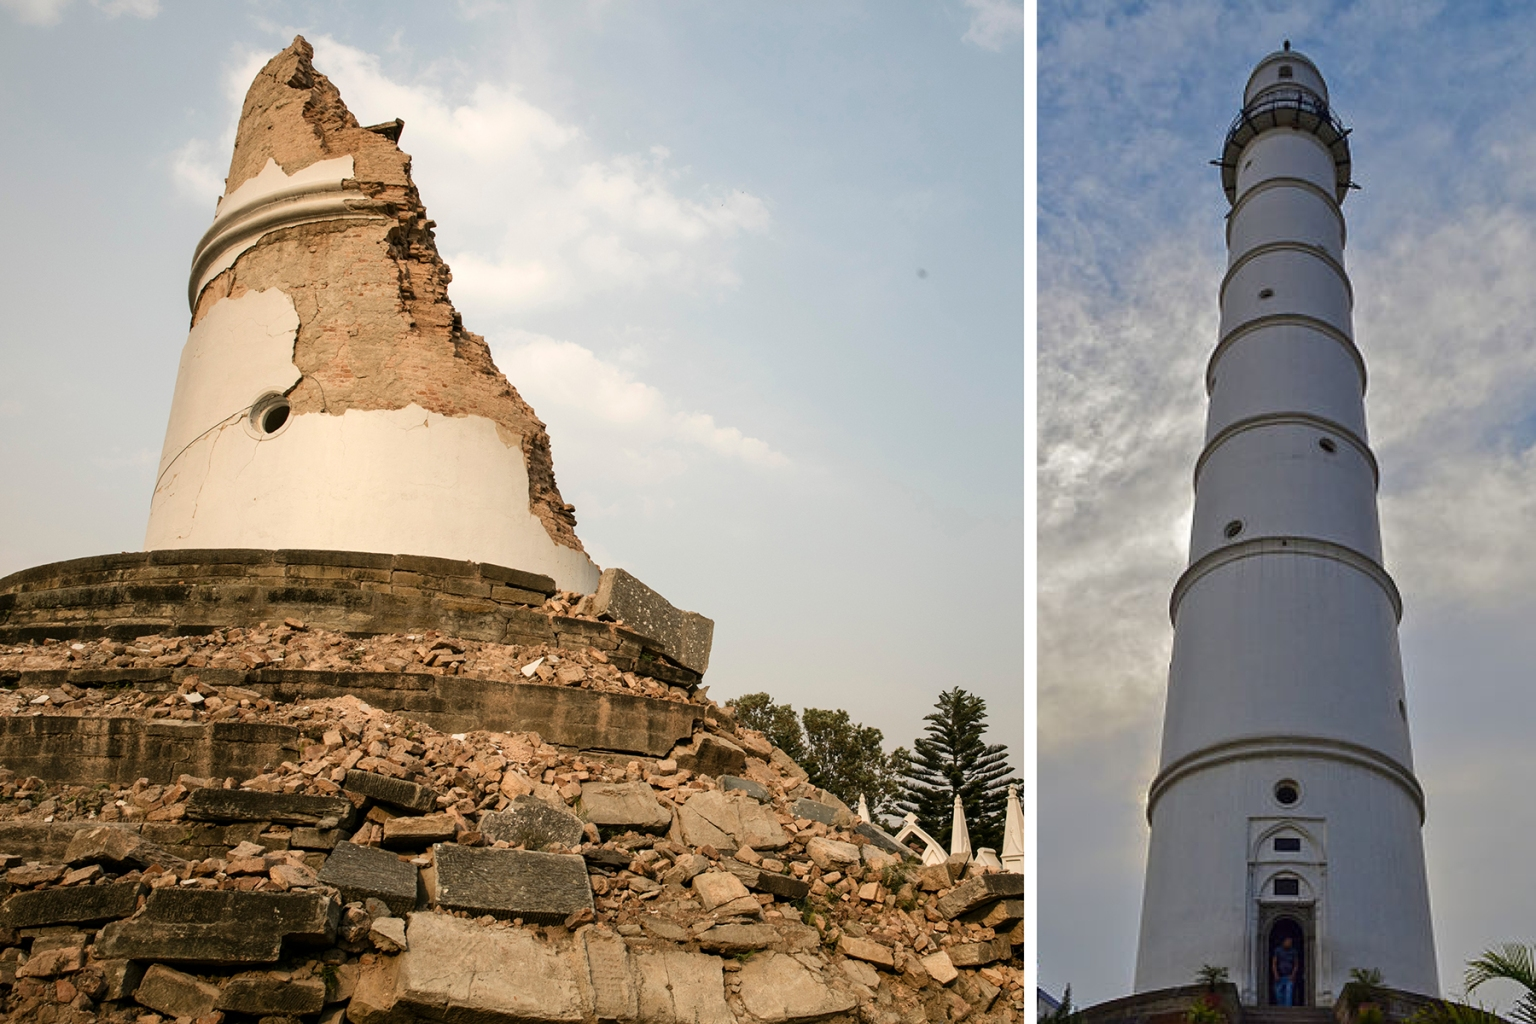 People view the ruins of the Dharahara Tower in Kathmandu, Nepal, on April 24, 2016. An earthquake in 2015 destroyed the nine-story tower, built in 1825.  (Paula Bronstein/Getty Images)